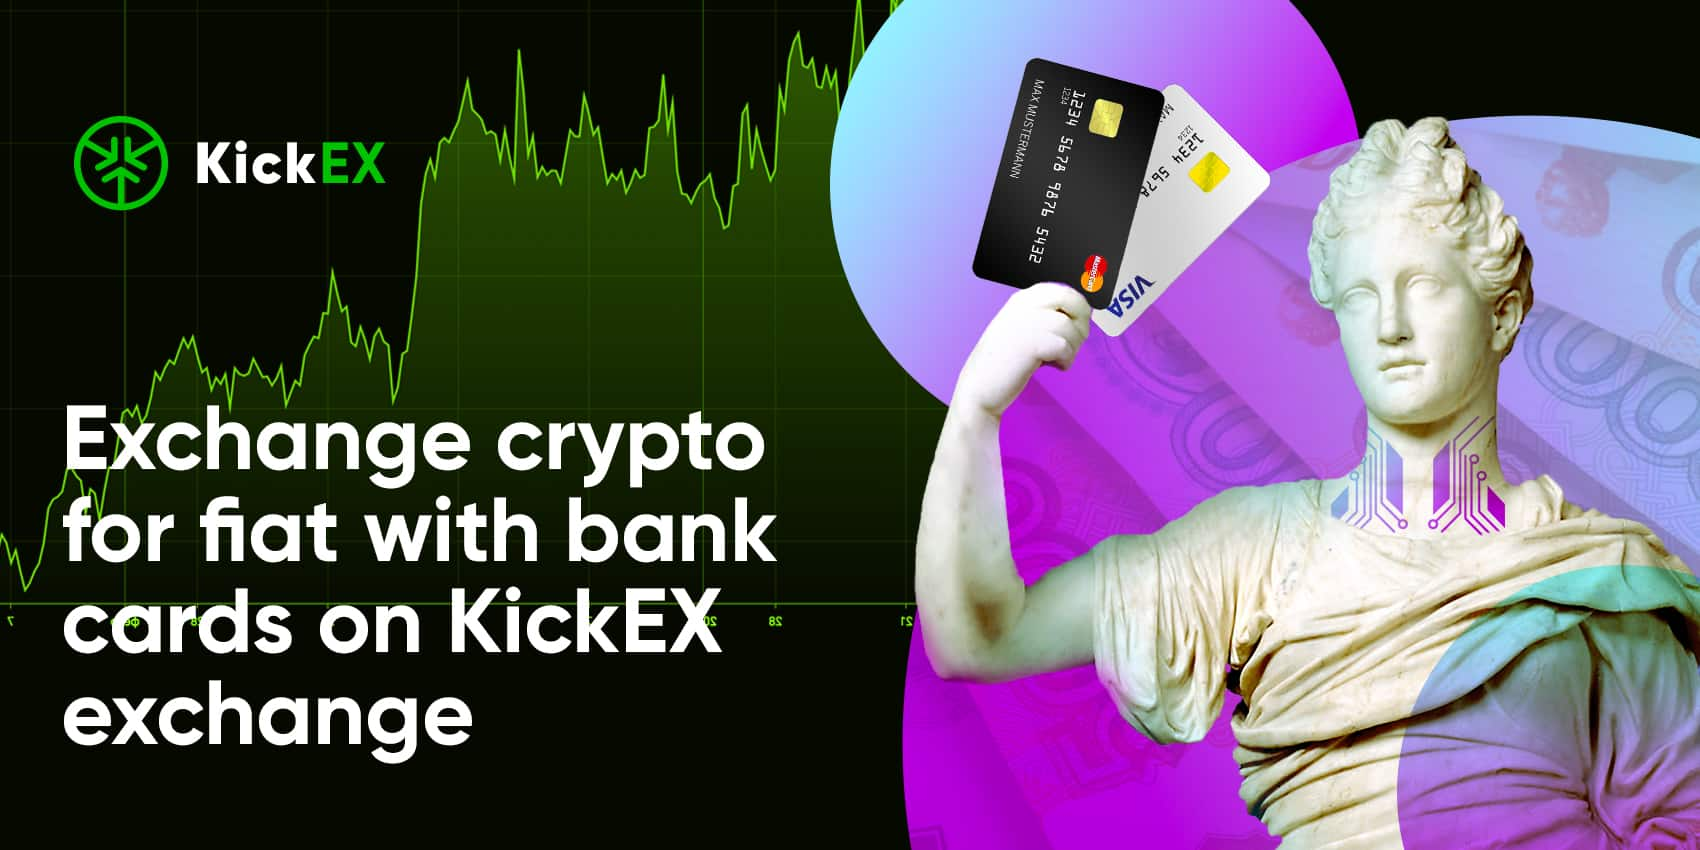 KickEX Adds Buying Crypto For Fiat With Bank Cards